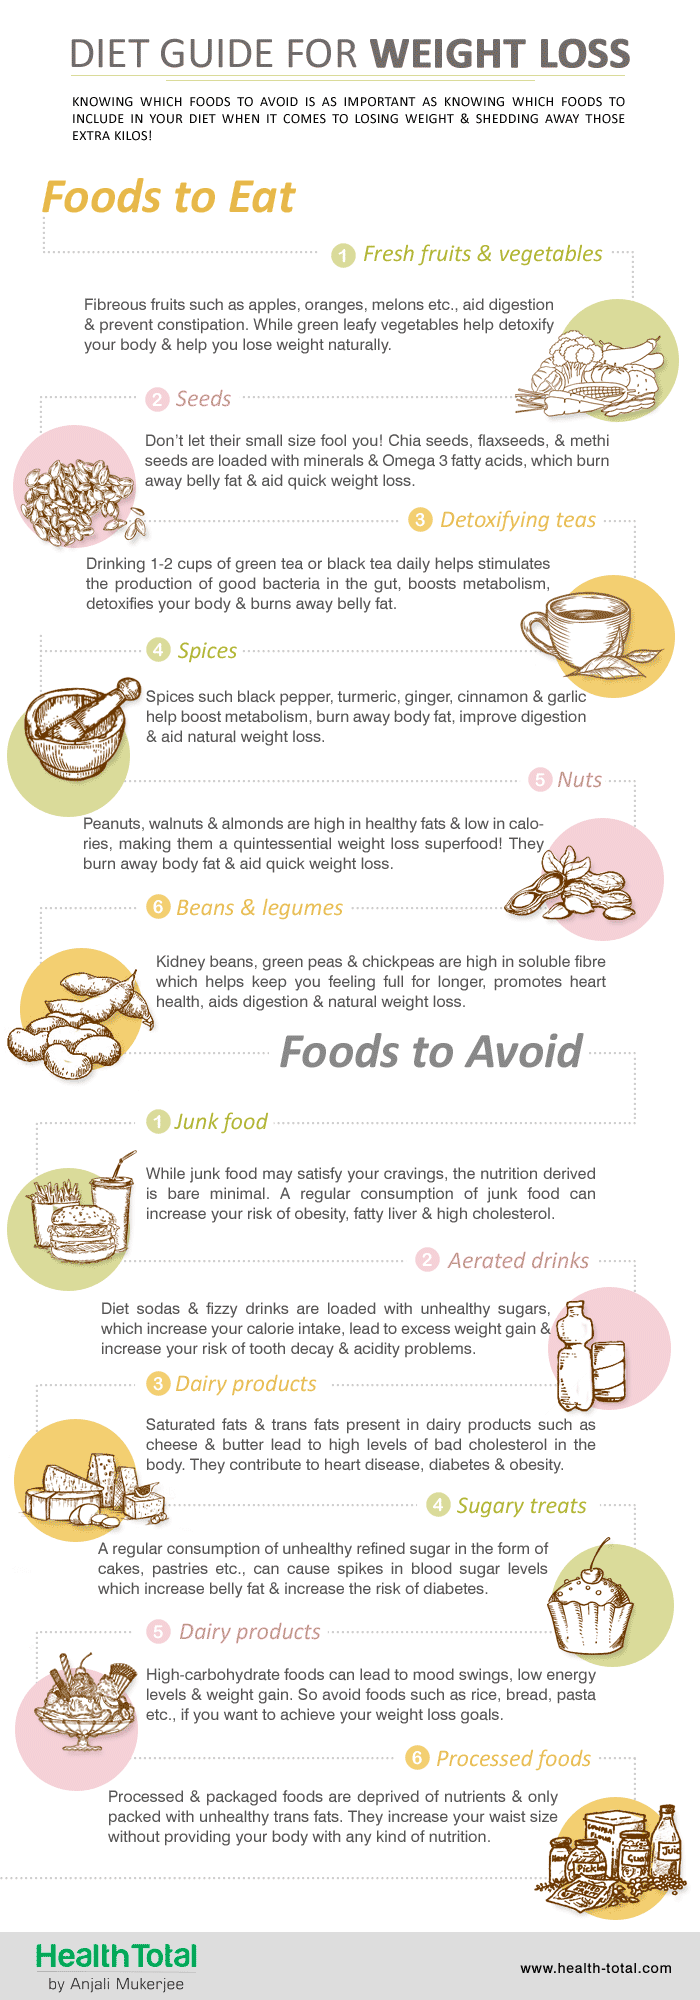 The 6/6 Diet Guide for Weight Loss - Infographic